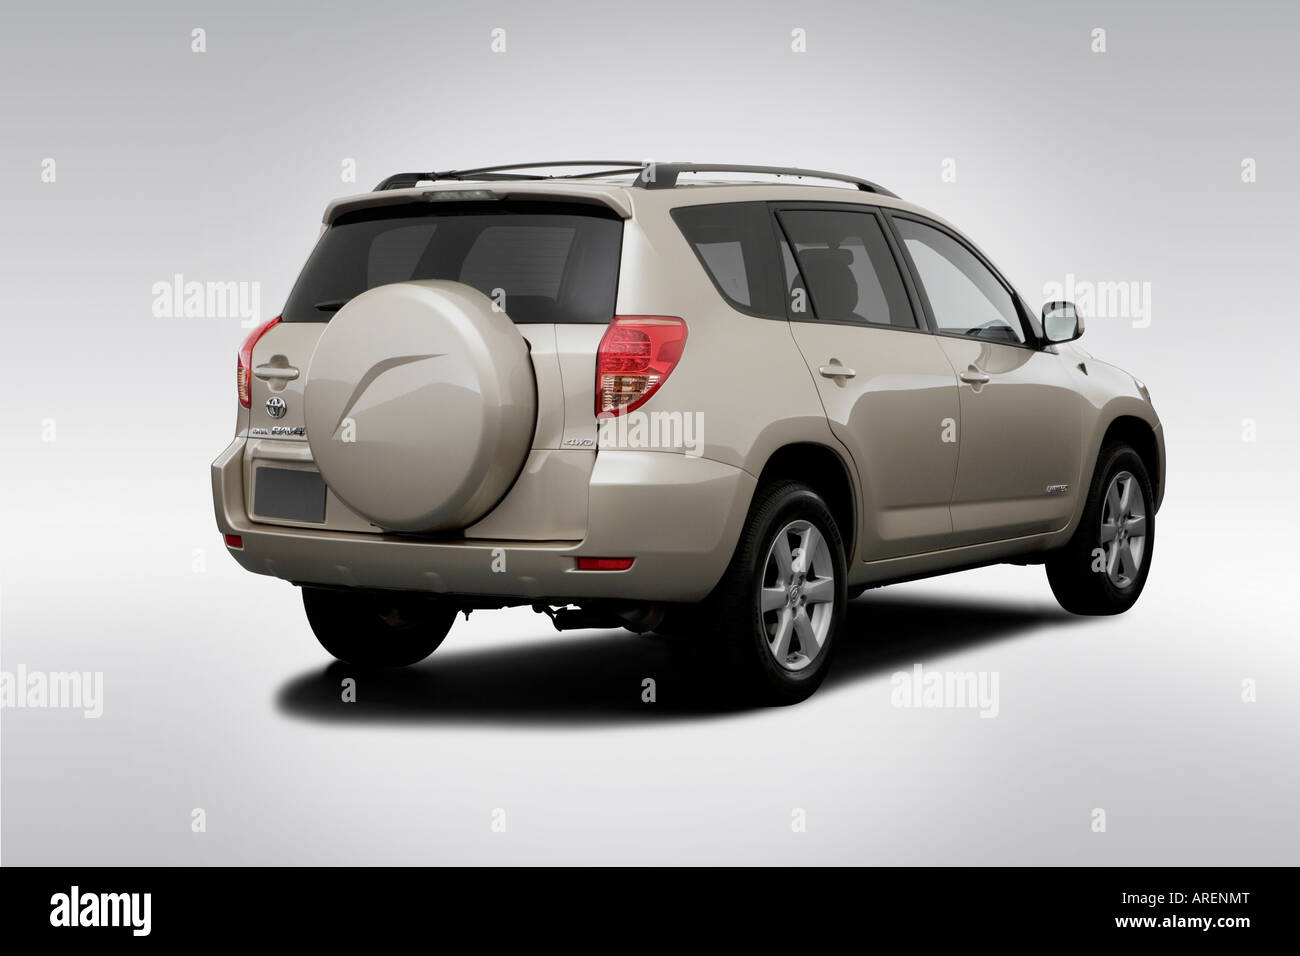 2006 toyota rav4 limited in beige rear angle view stock photo royalty free image 16032263. Black Bedroom Furniture Sets. Home Design Ideas